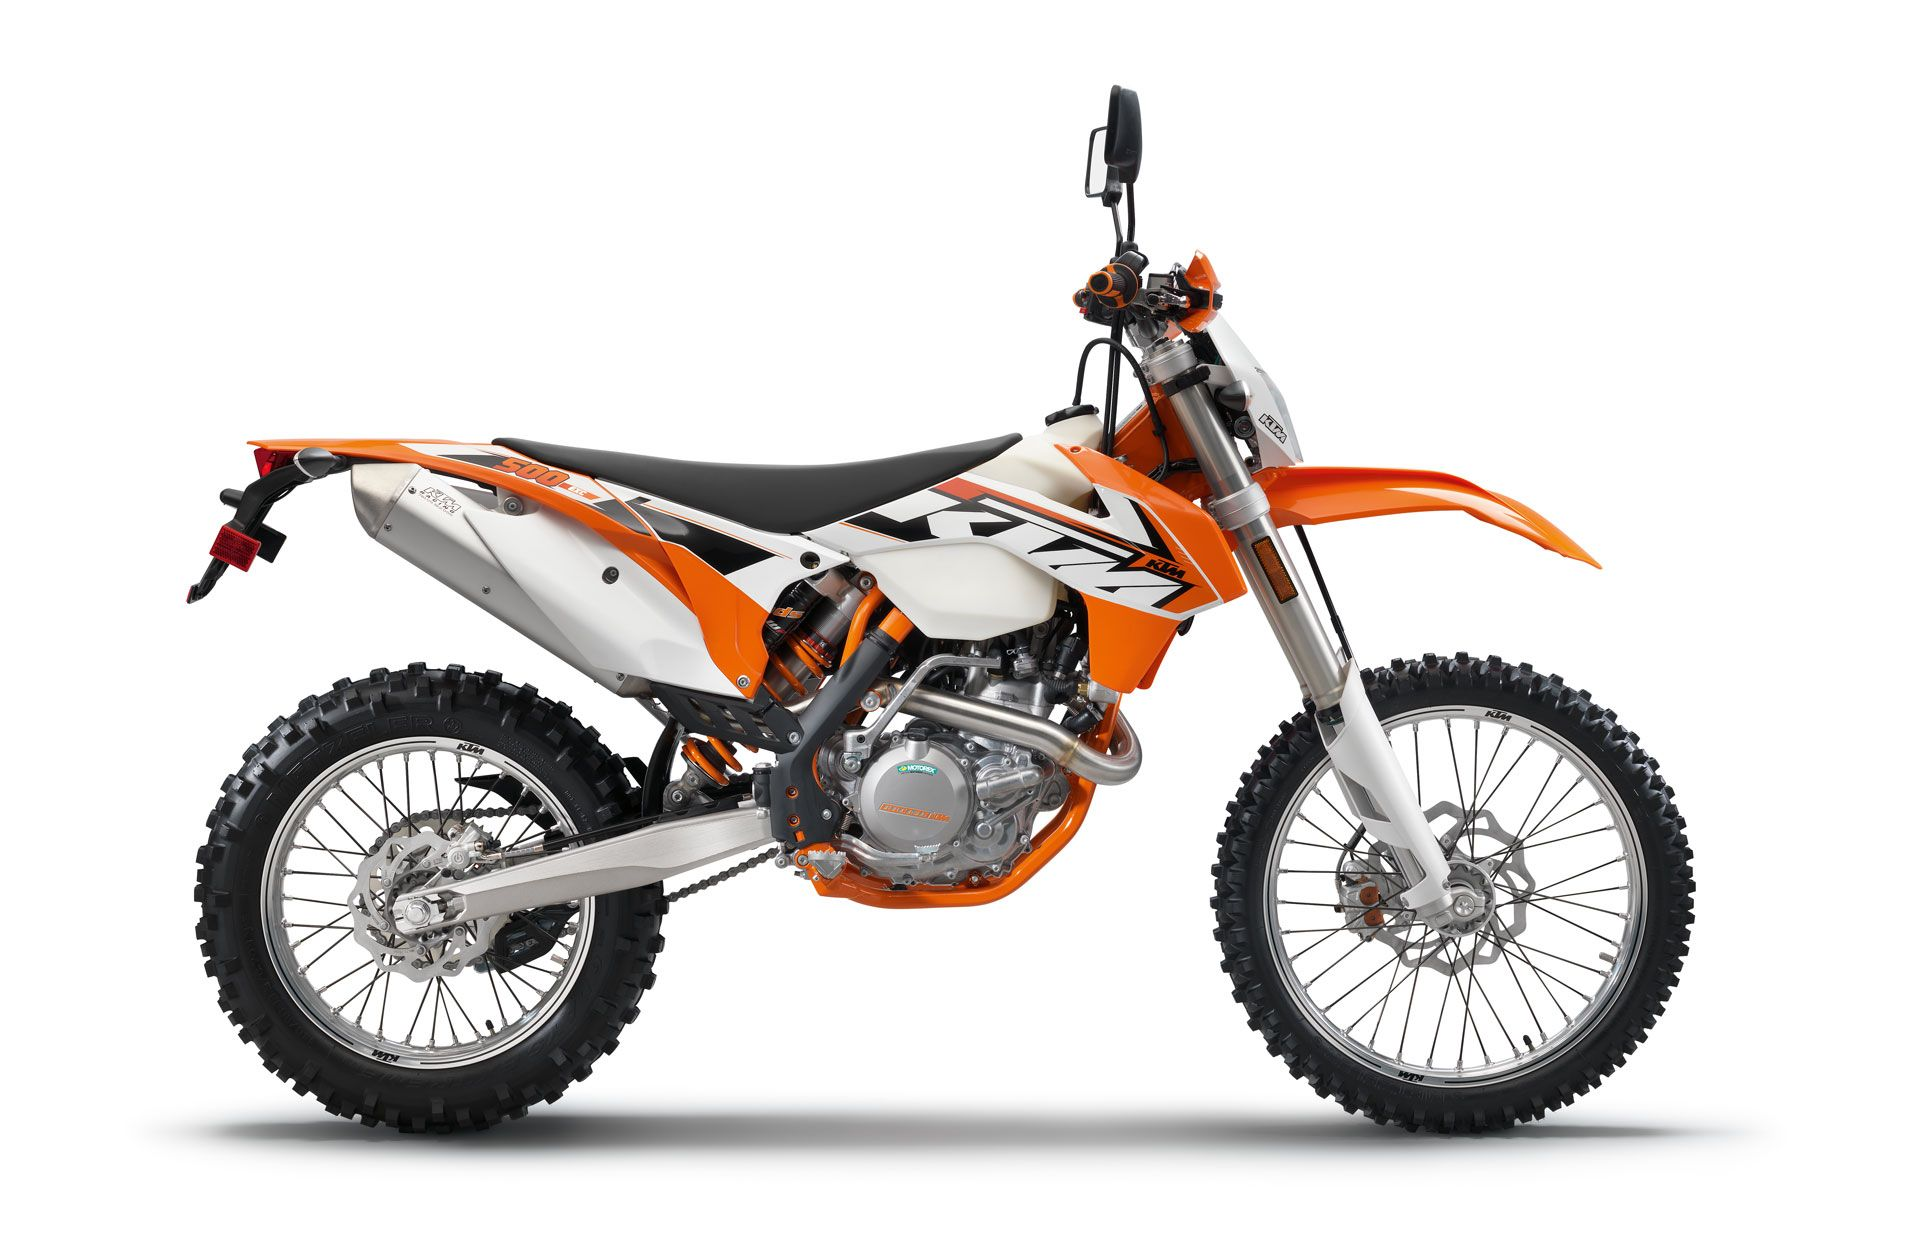 KTM 500 EXC Dirtoriented Dual Sport245lbs dry weight